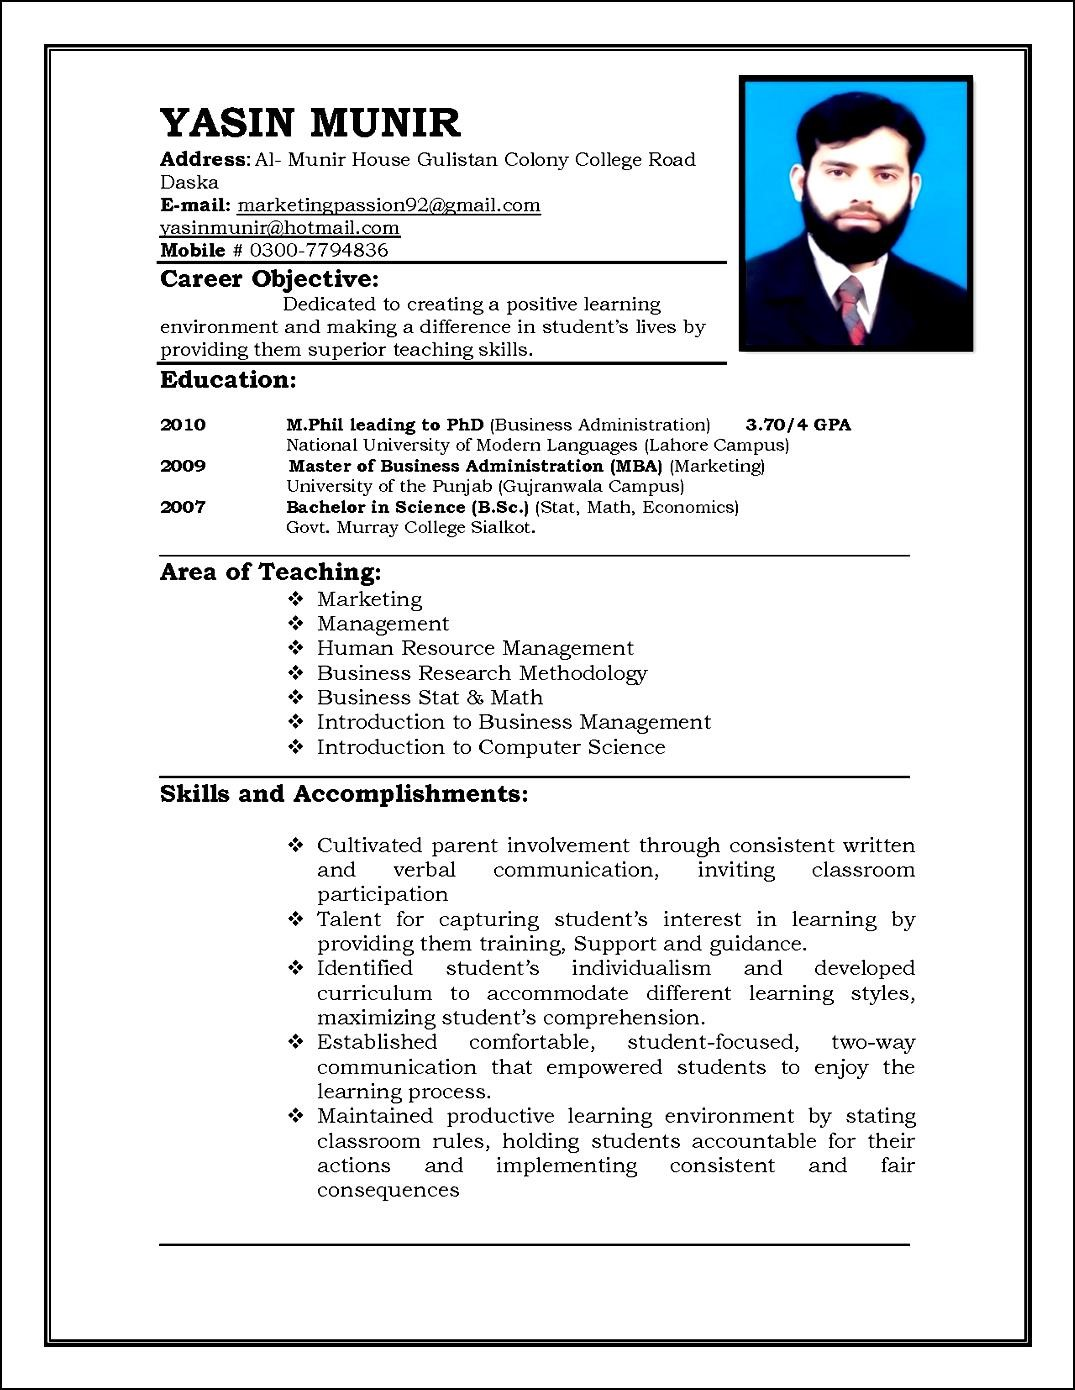 curriculum vitae job related skills service resume curriculum vitae job related skills curriculum vitae definition of curriculum vitae by the curriculum vitae for